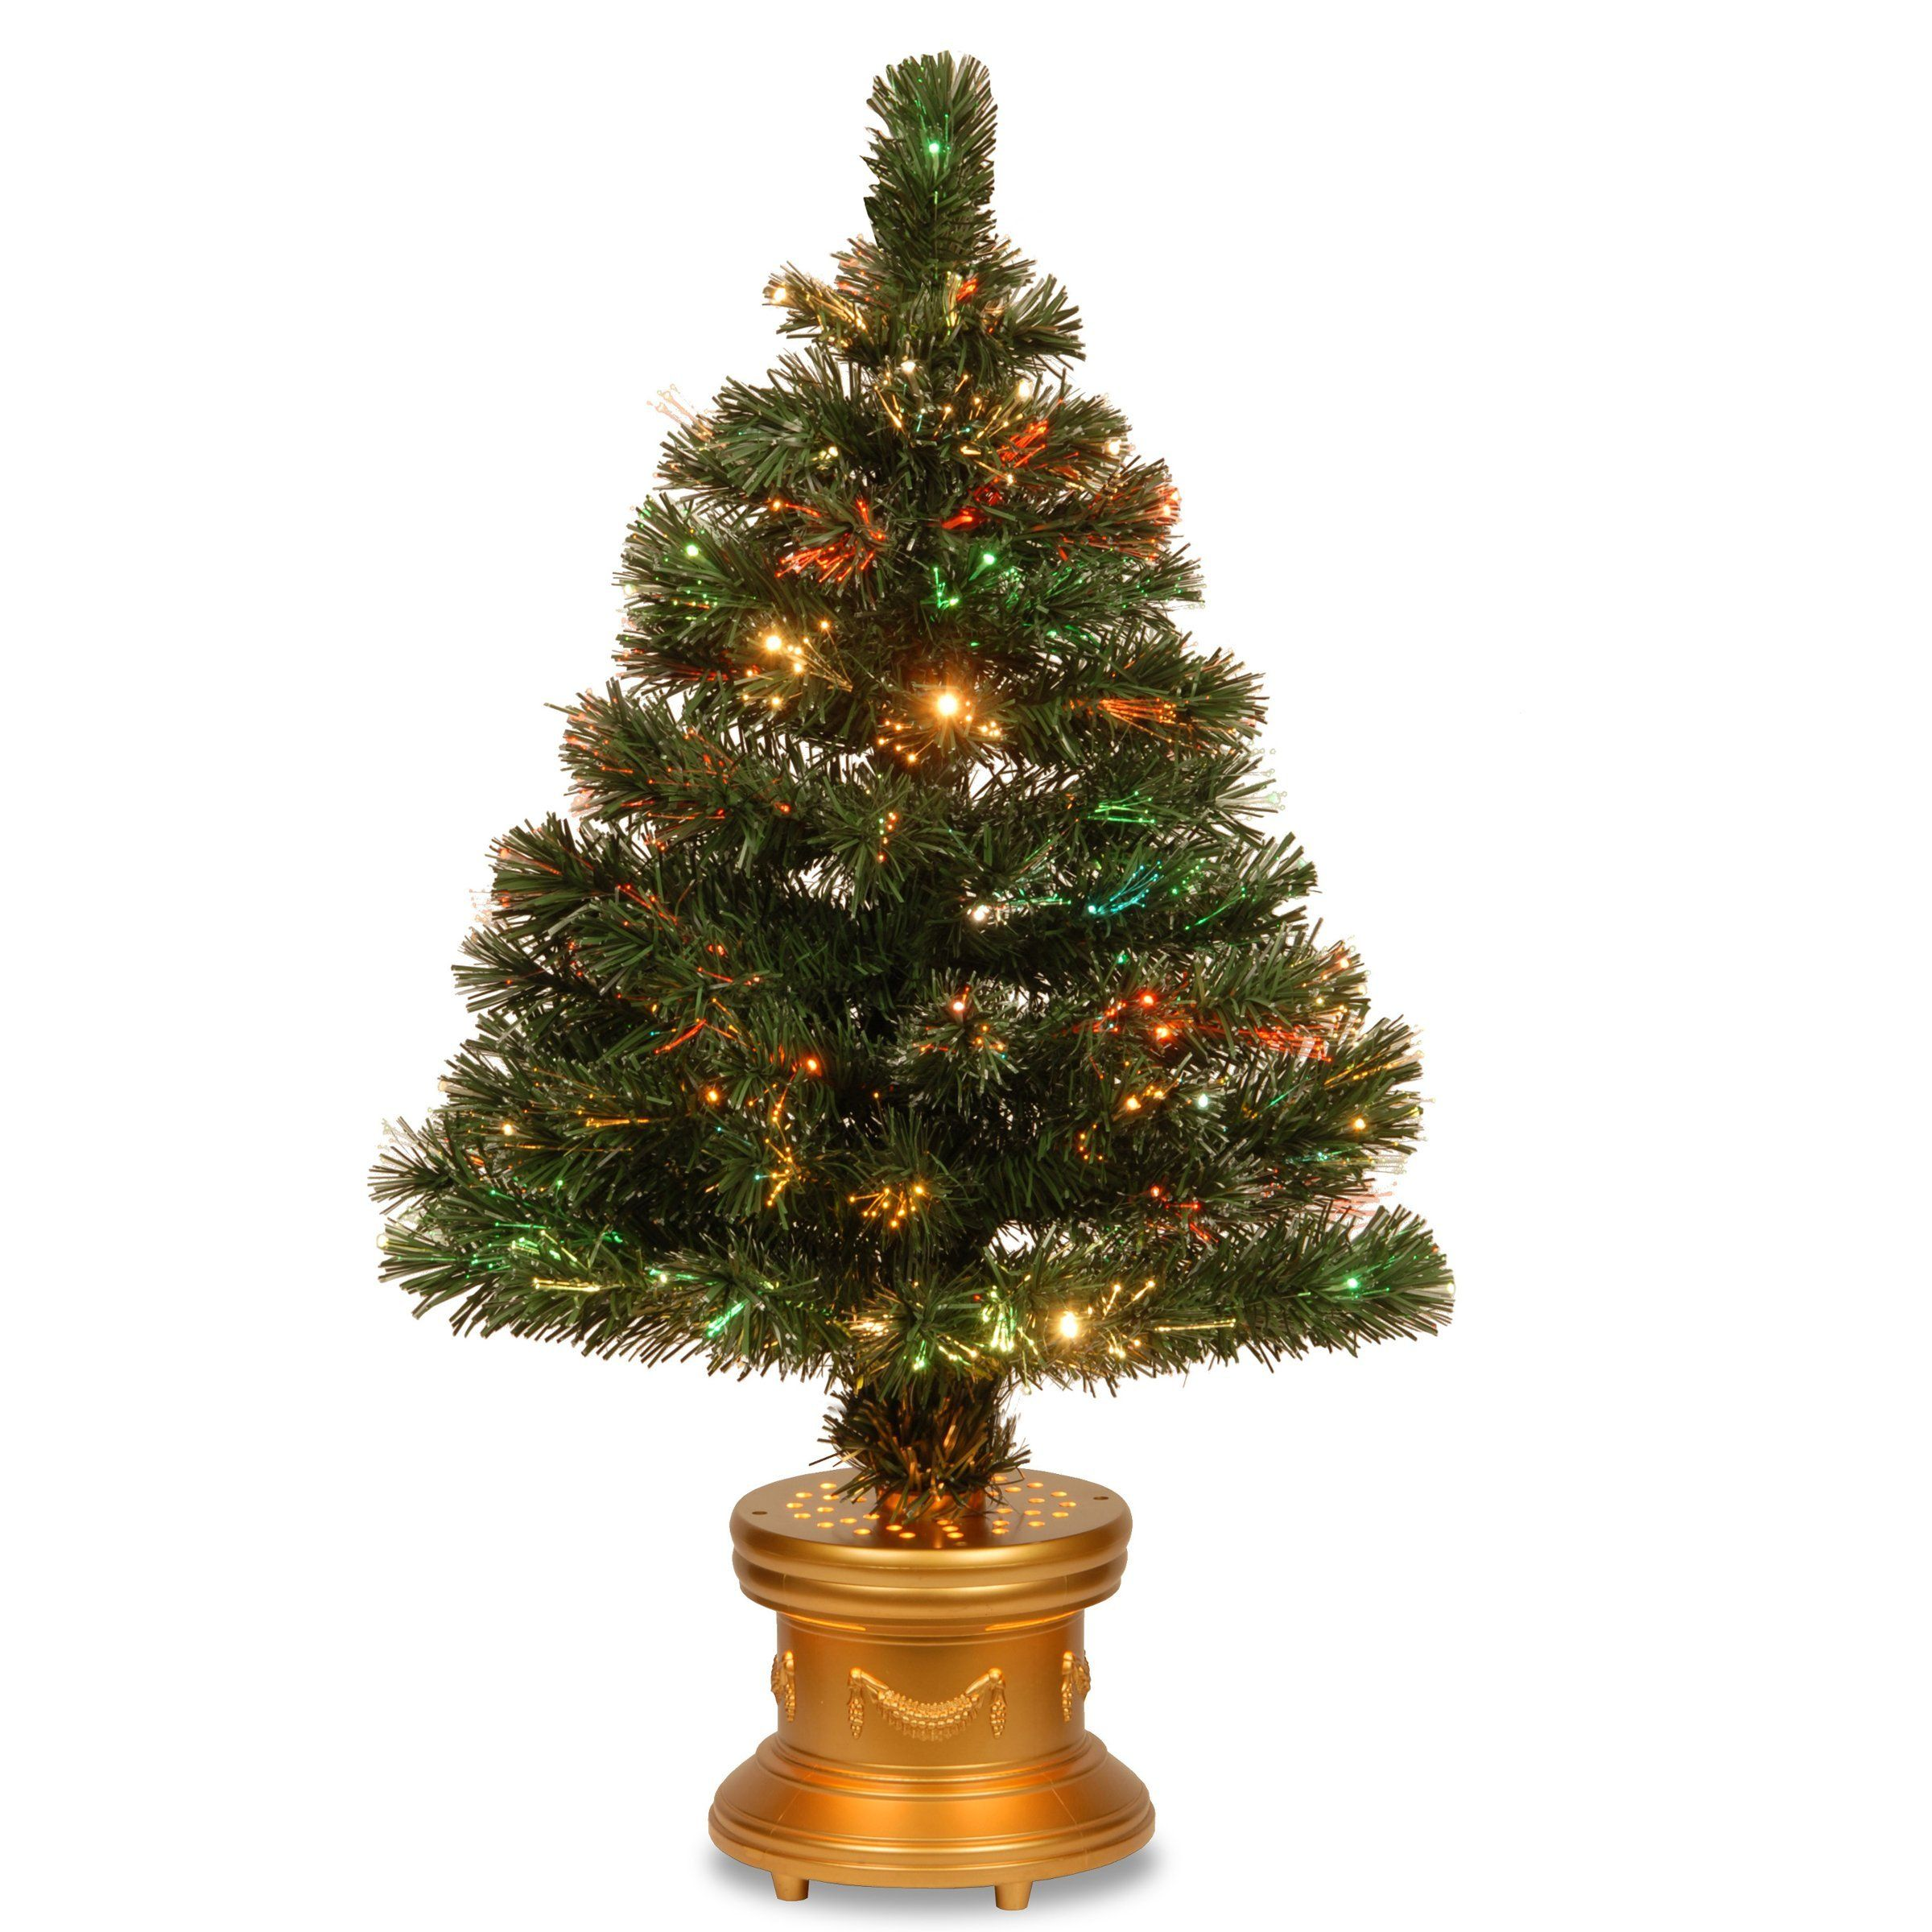 National Tree Szrx7 100L 36 1 36 Fiber Optic Radiance Firework Tree